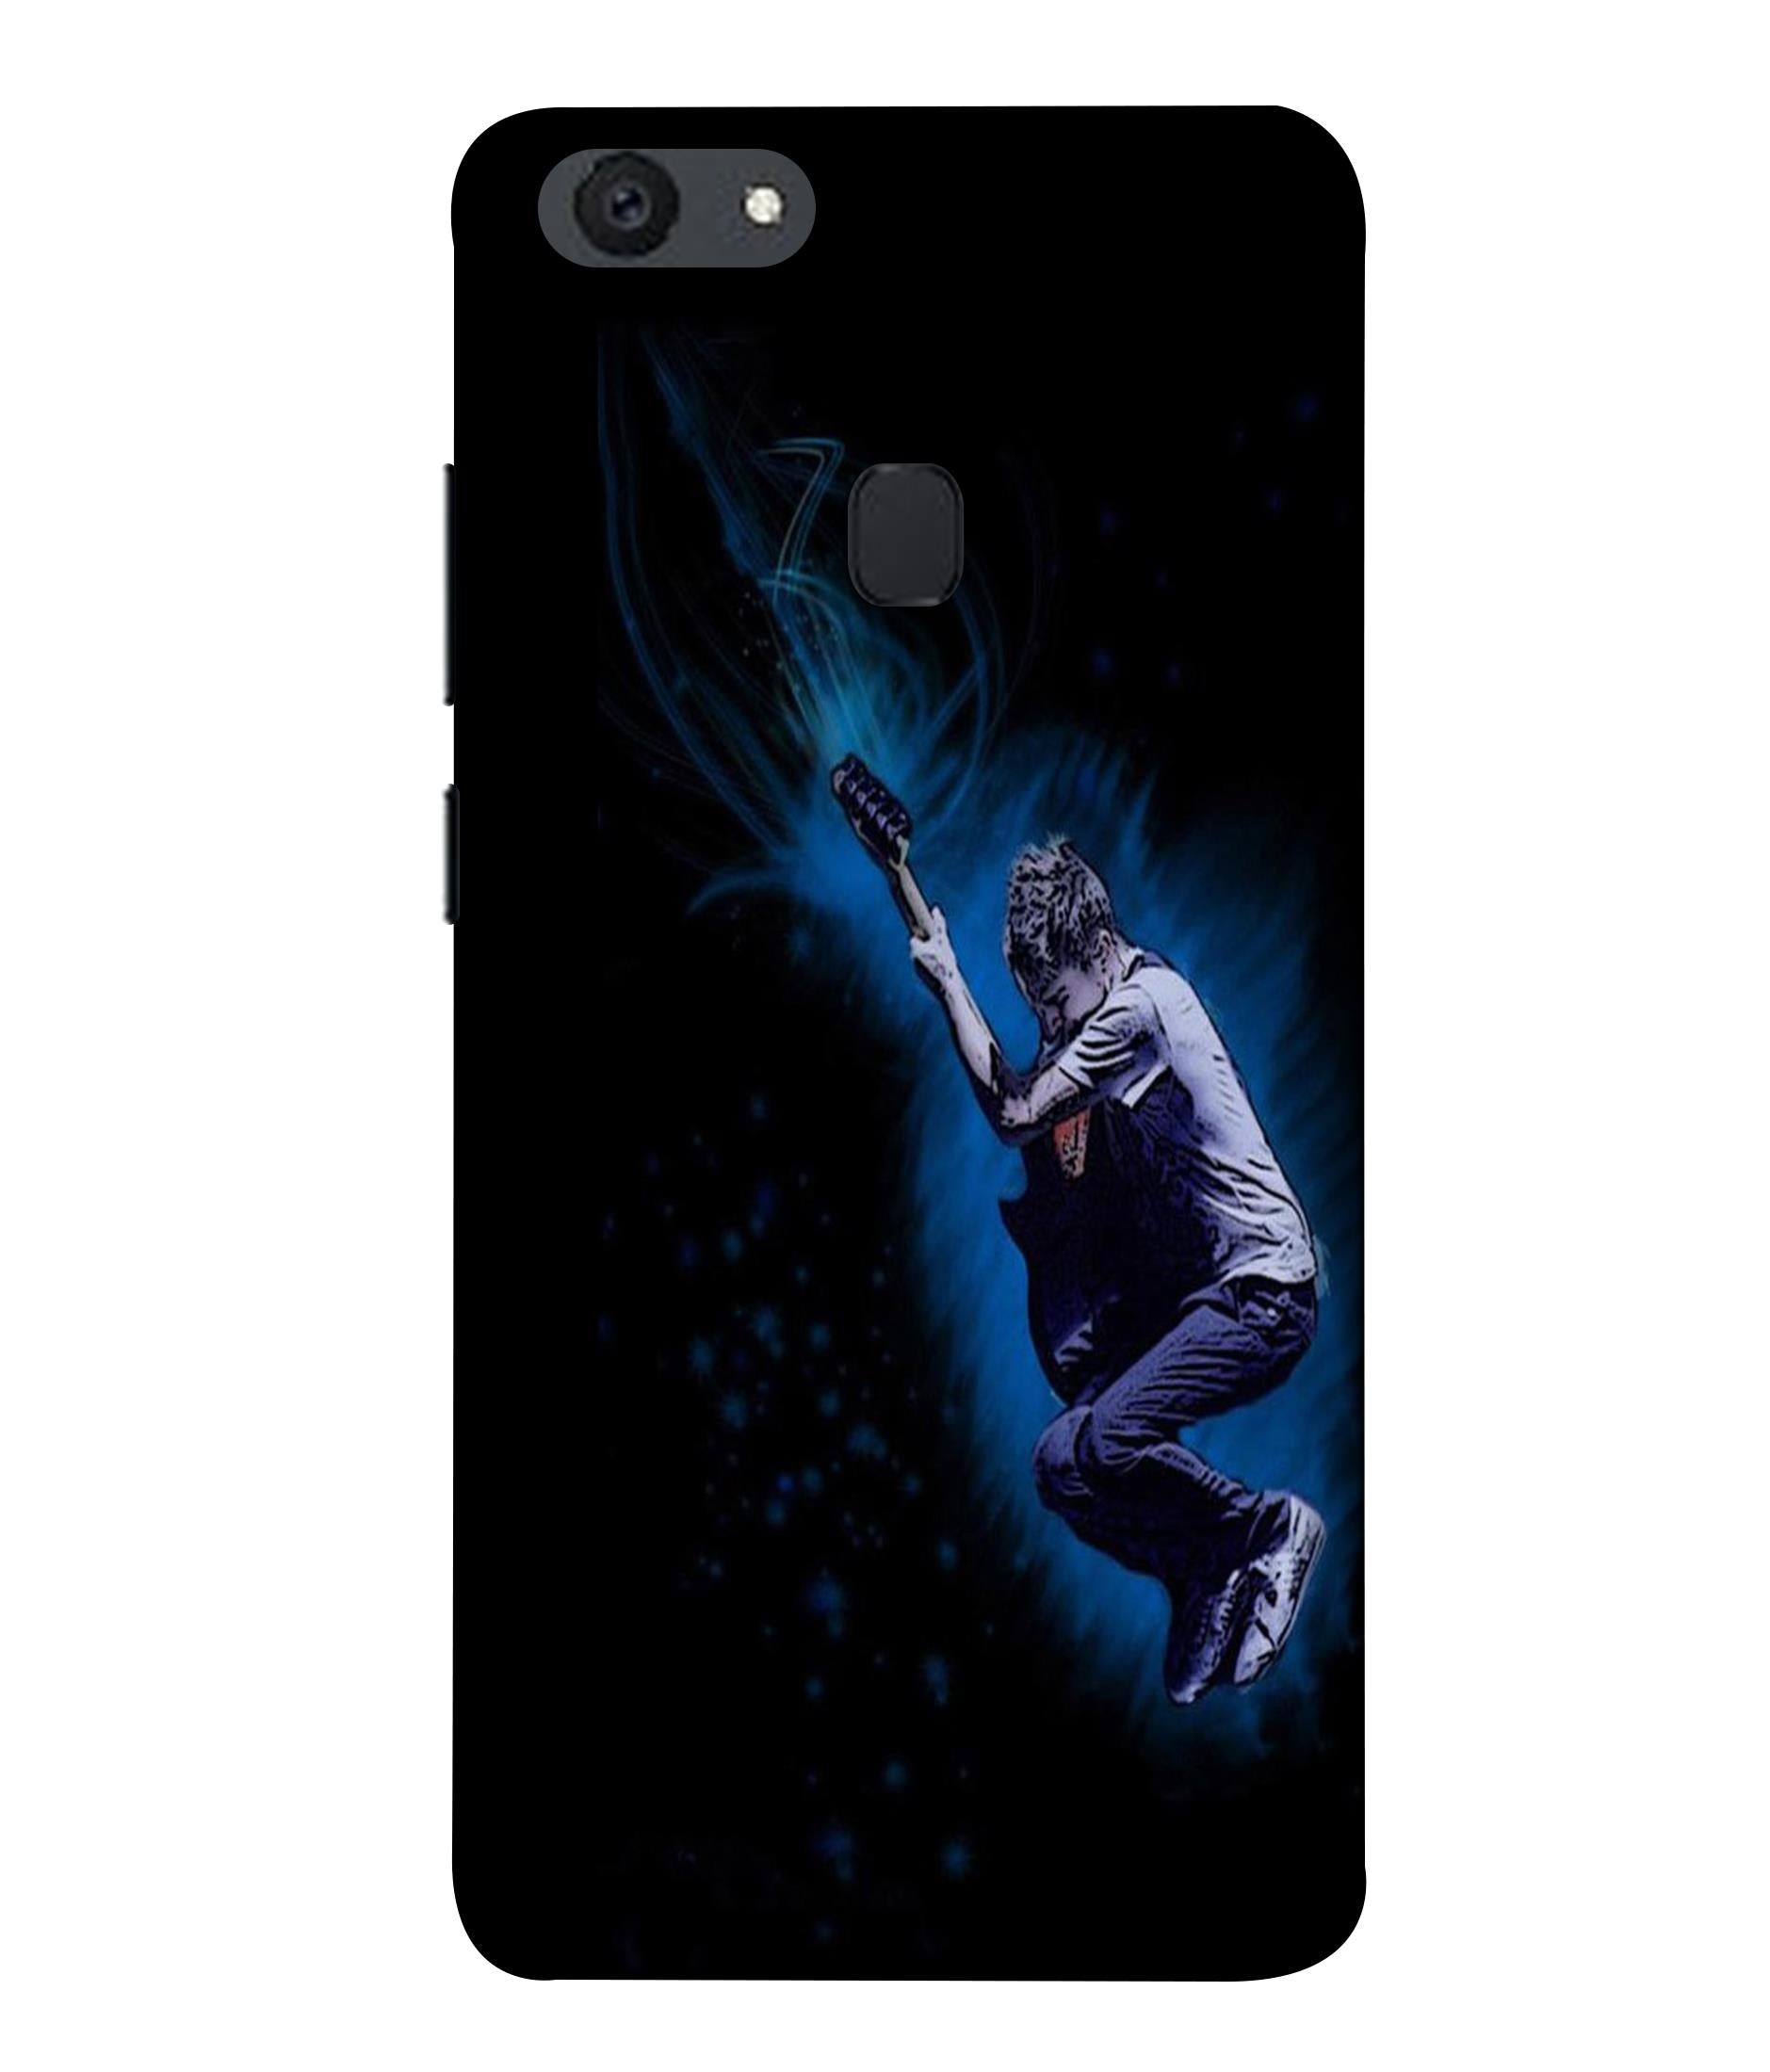 OPPOF5 Premium Styled Guitar Designed Back Cover